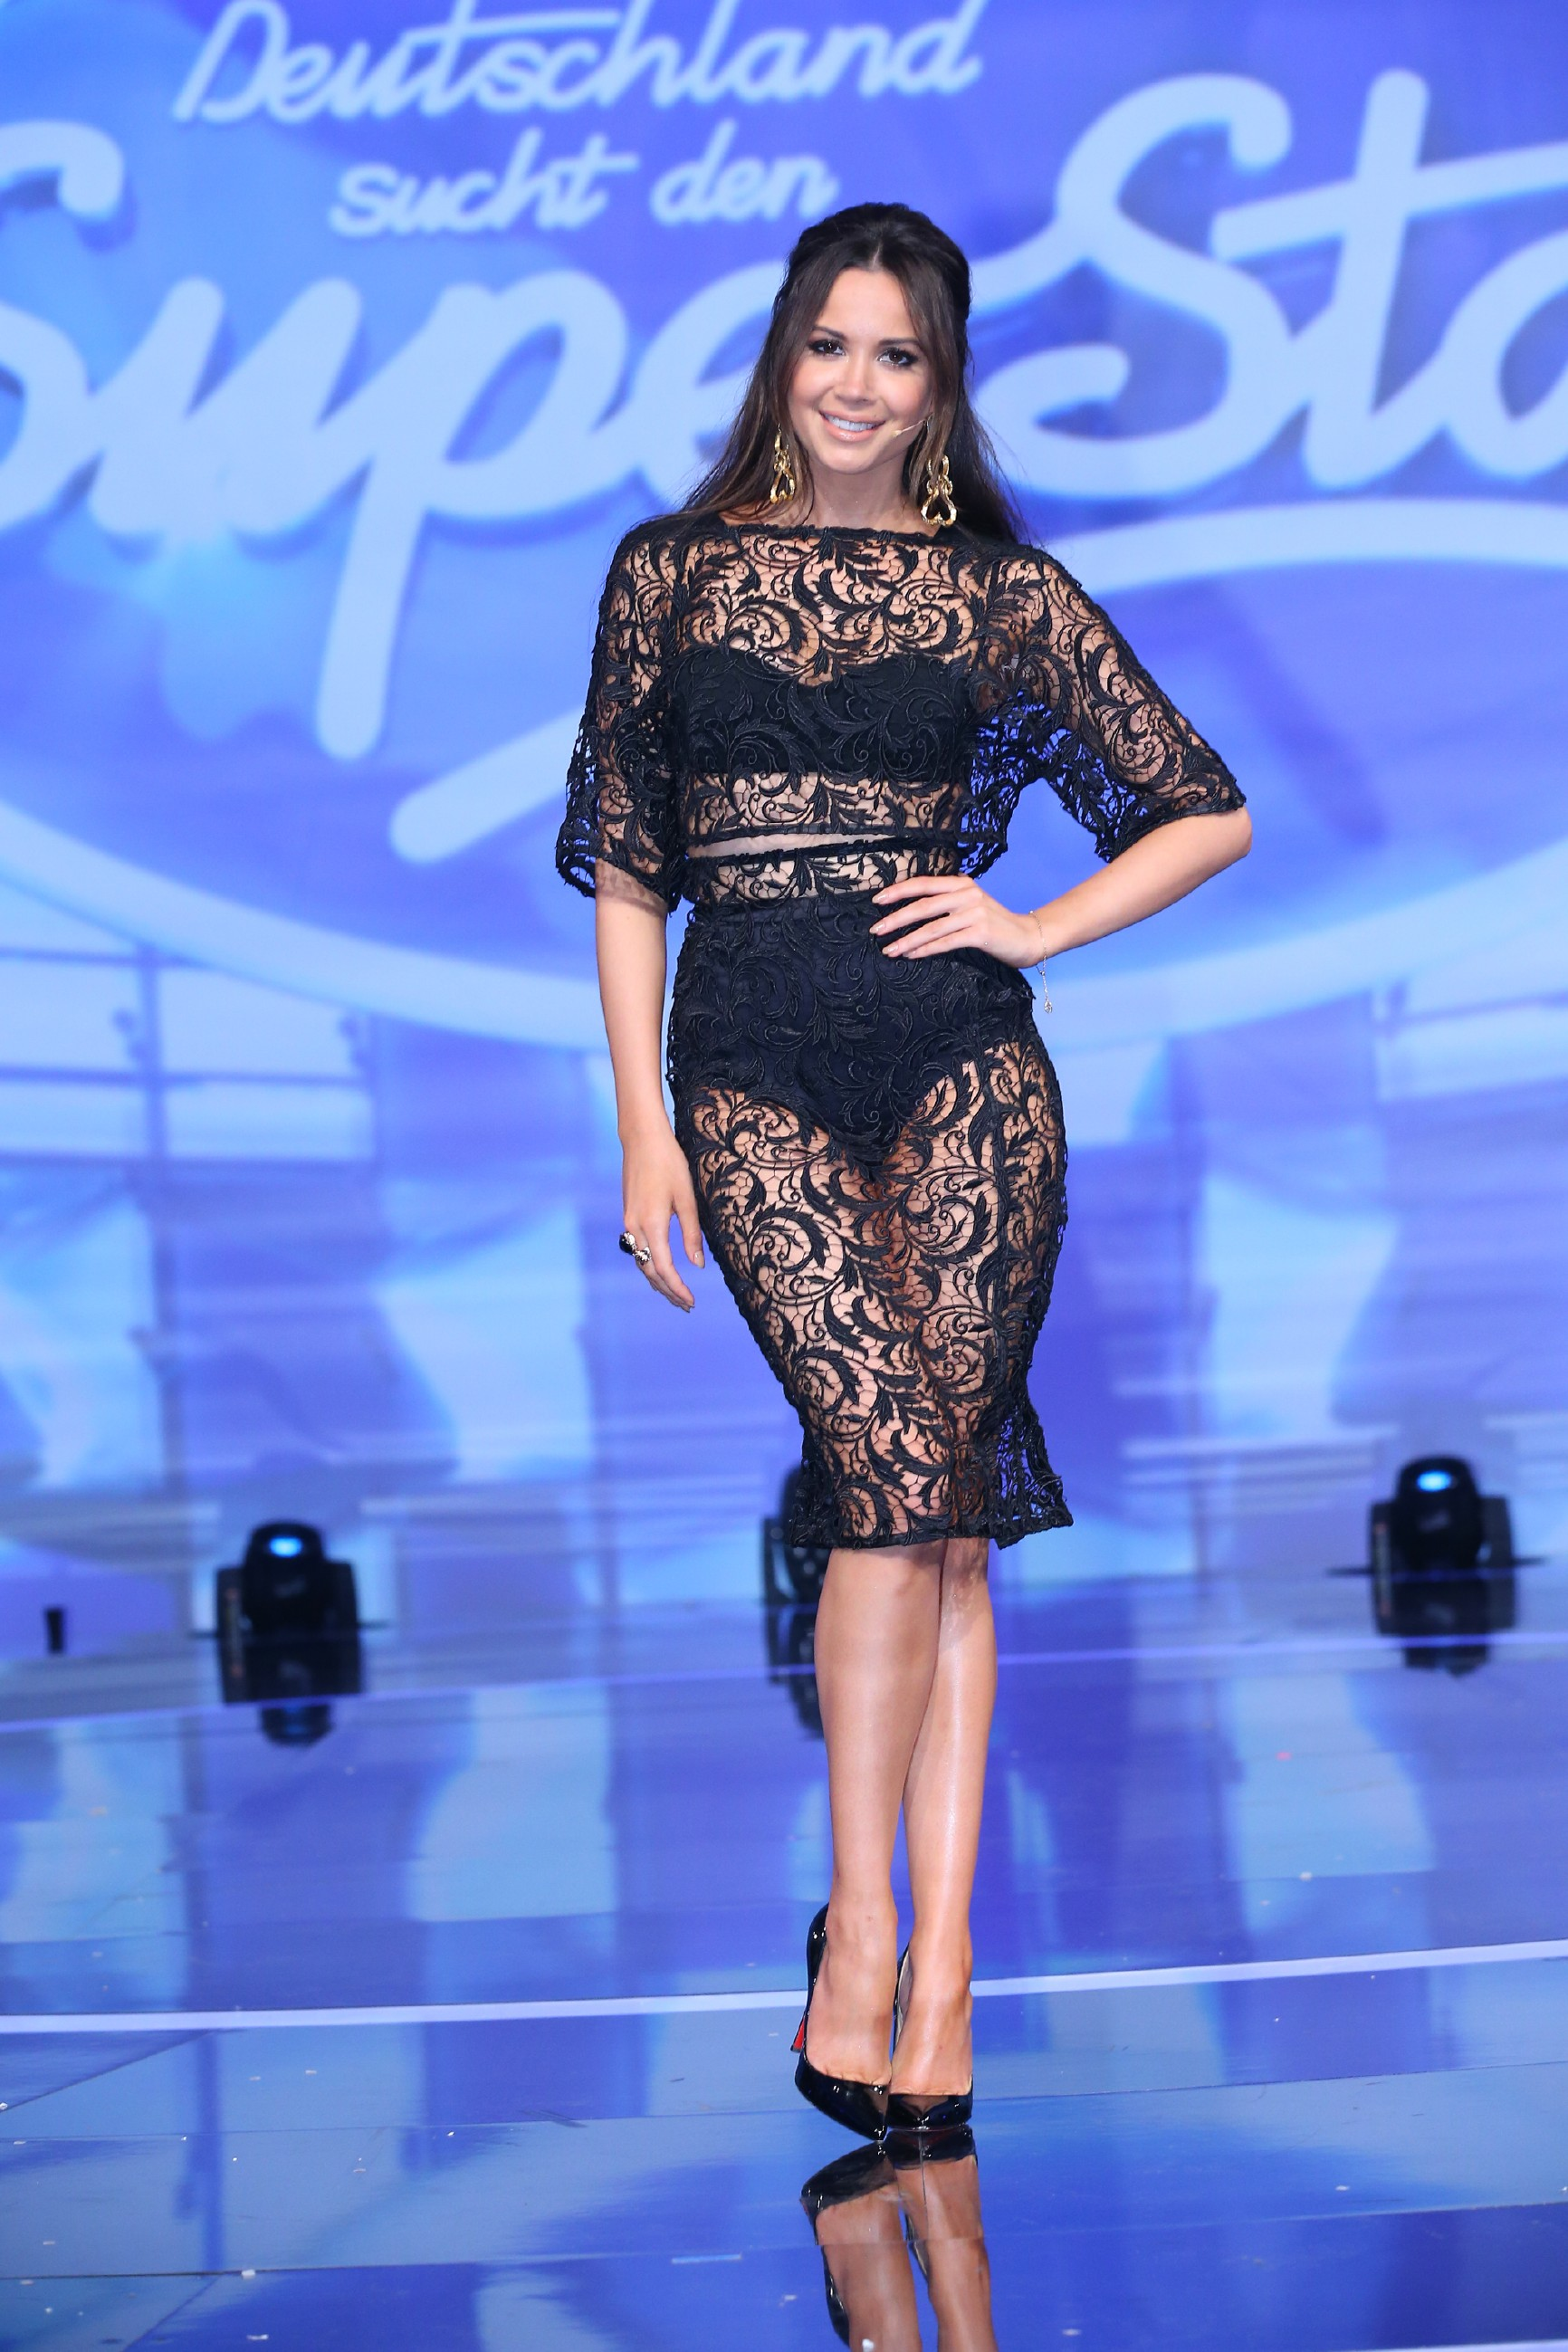 dsds 2015 halbfinale mandy capristo stars on tv. Black Bedroom Furniture Sets. Home Design Ideas